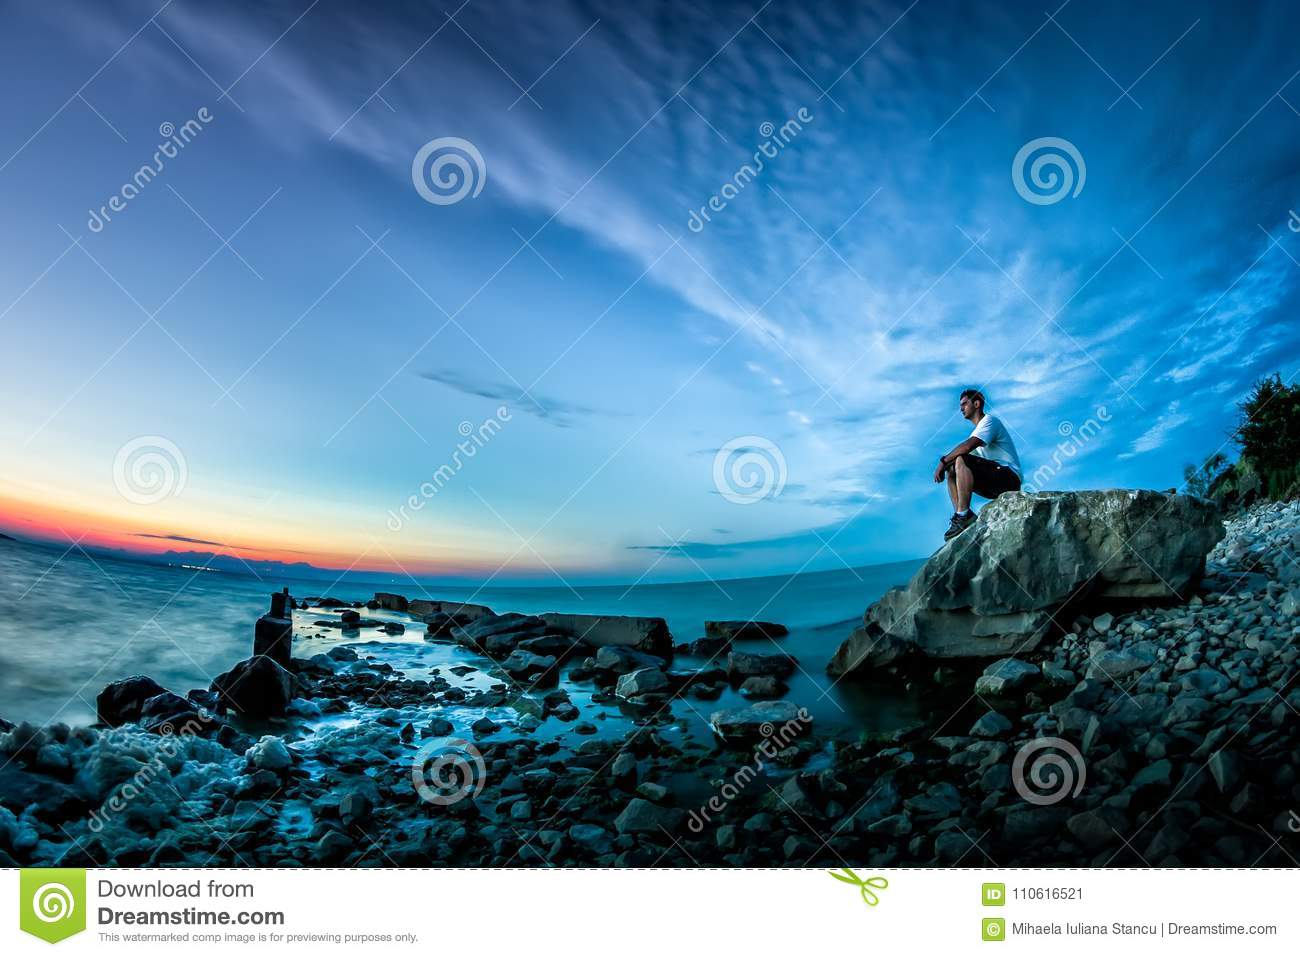 Beautiful landscape with sunset over the lake and a young man sitting on a rock